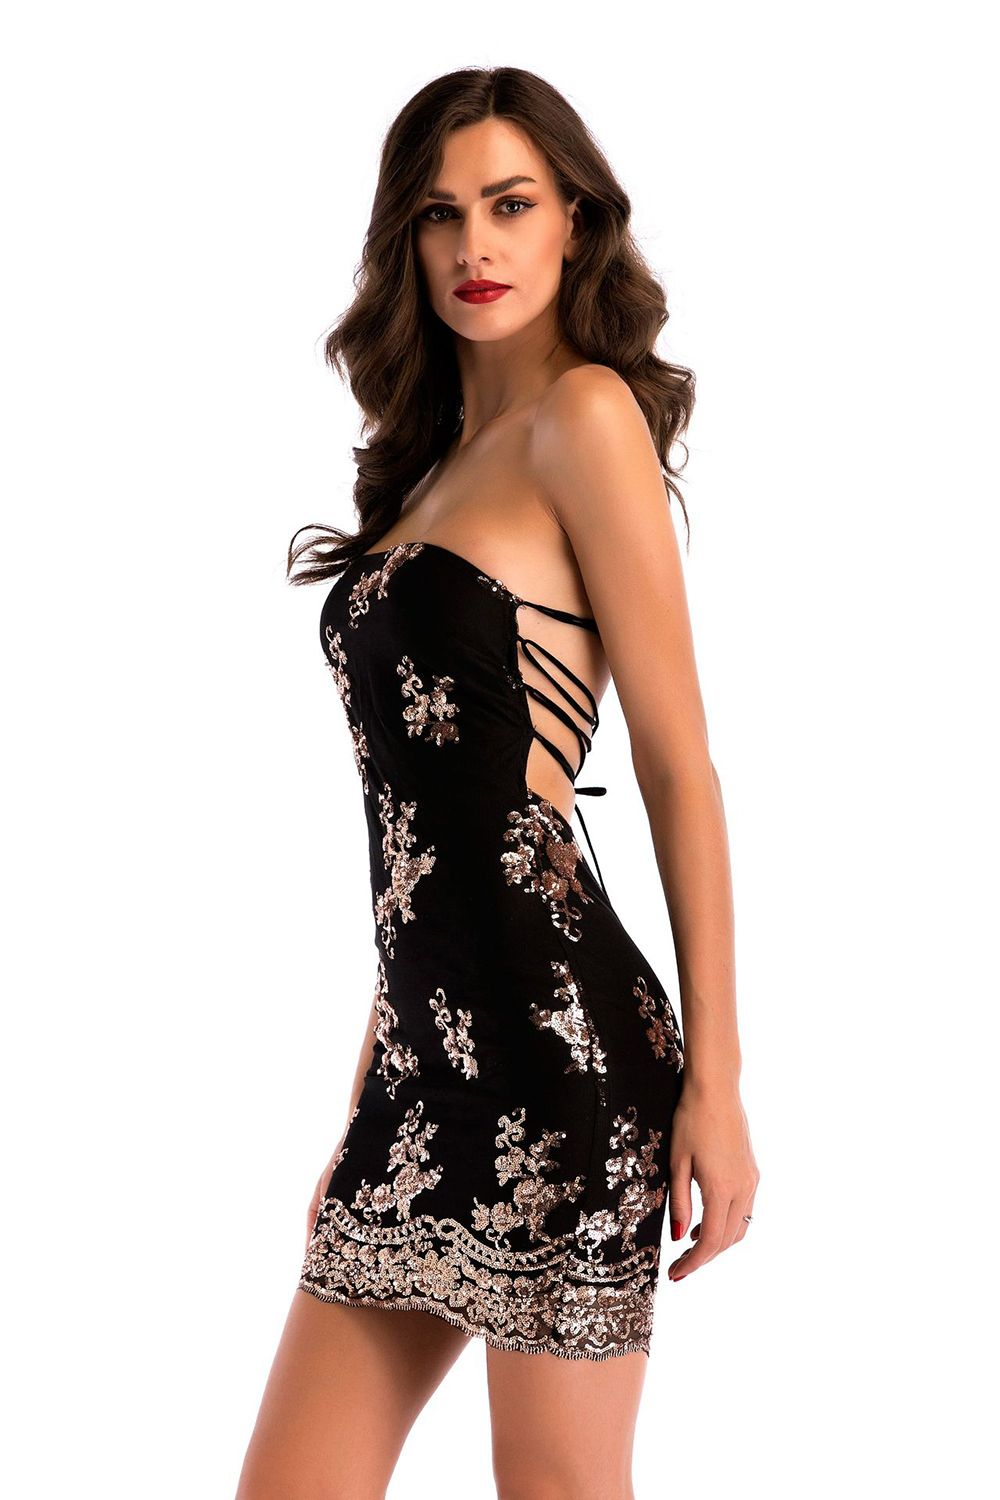 bcb65b95bd7 2019 Open Back Straps Hip Skirt Sexy Nightclub Tube Top Dress ...